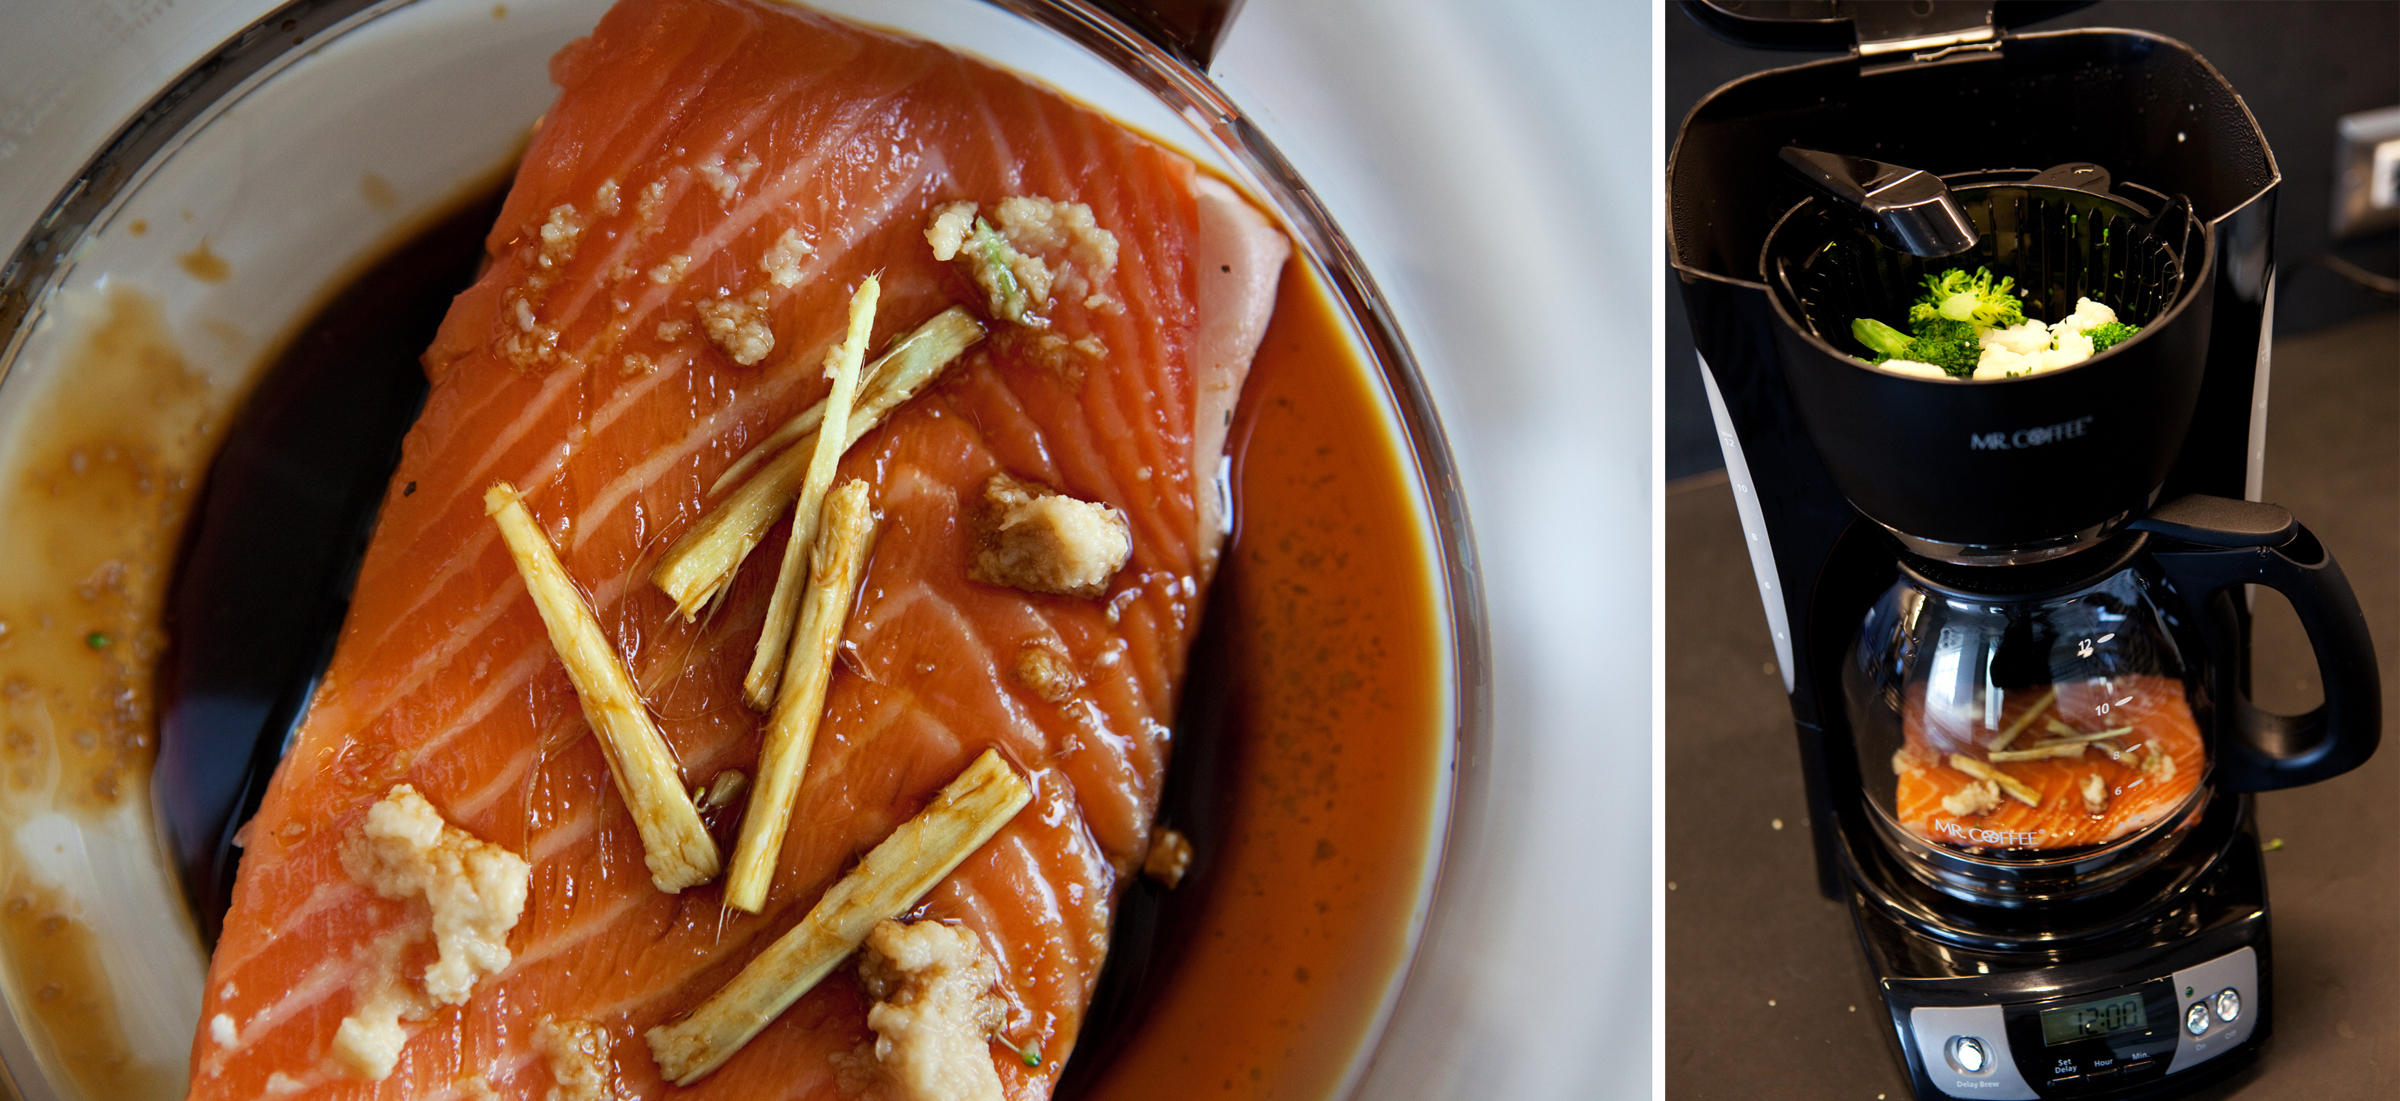 slice of salmon with ginger, garlic and soy sauce sits in the coffee ...